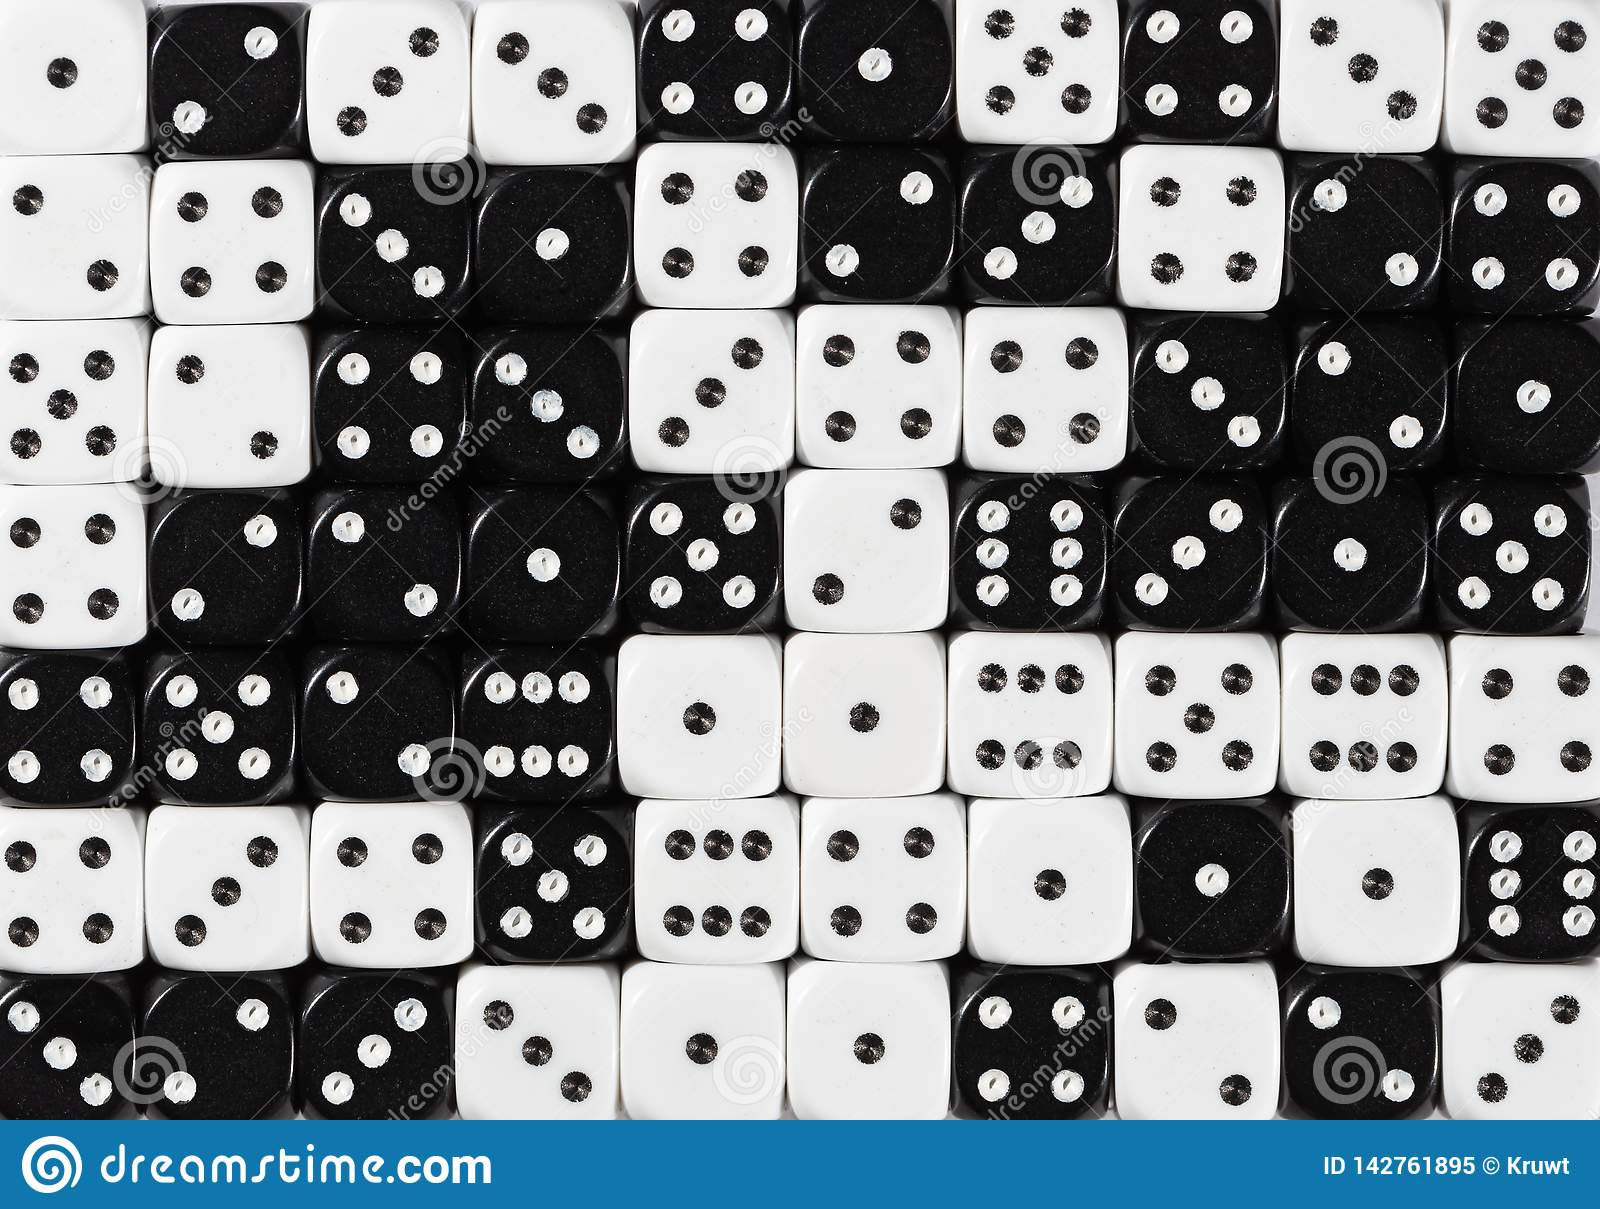 Background of 70 random ordered black and white dices